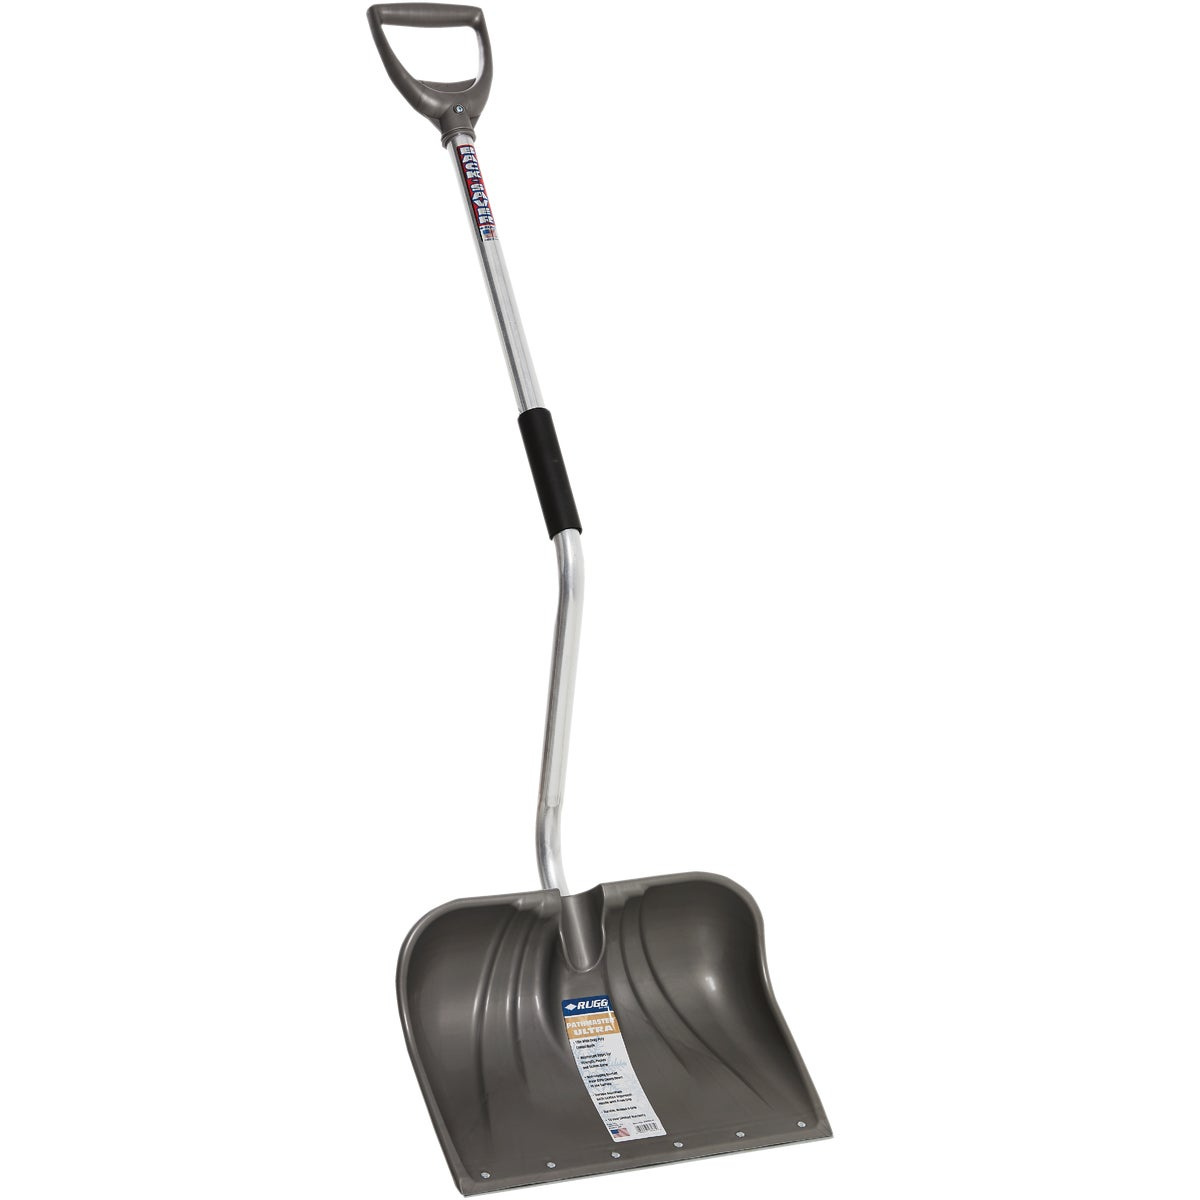 BENT HANDLE SNOW SHOVEL - 26PBSW by Rugg Manufacturing